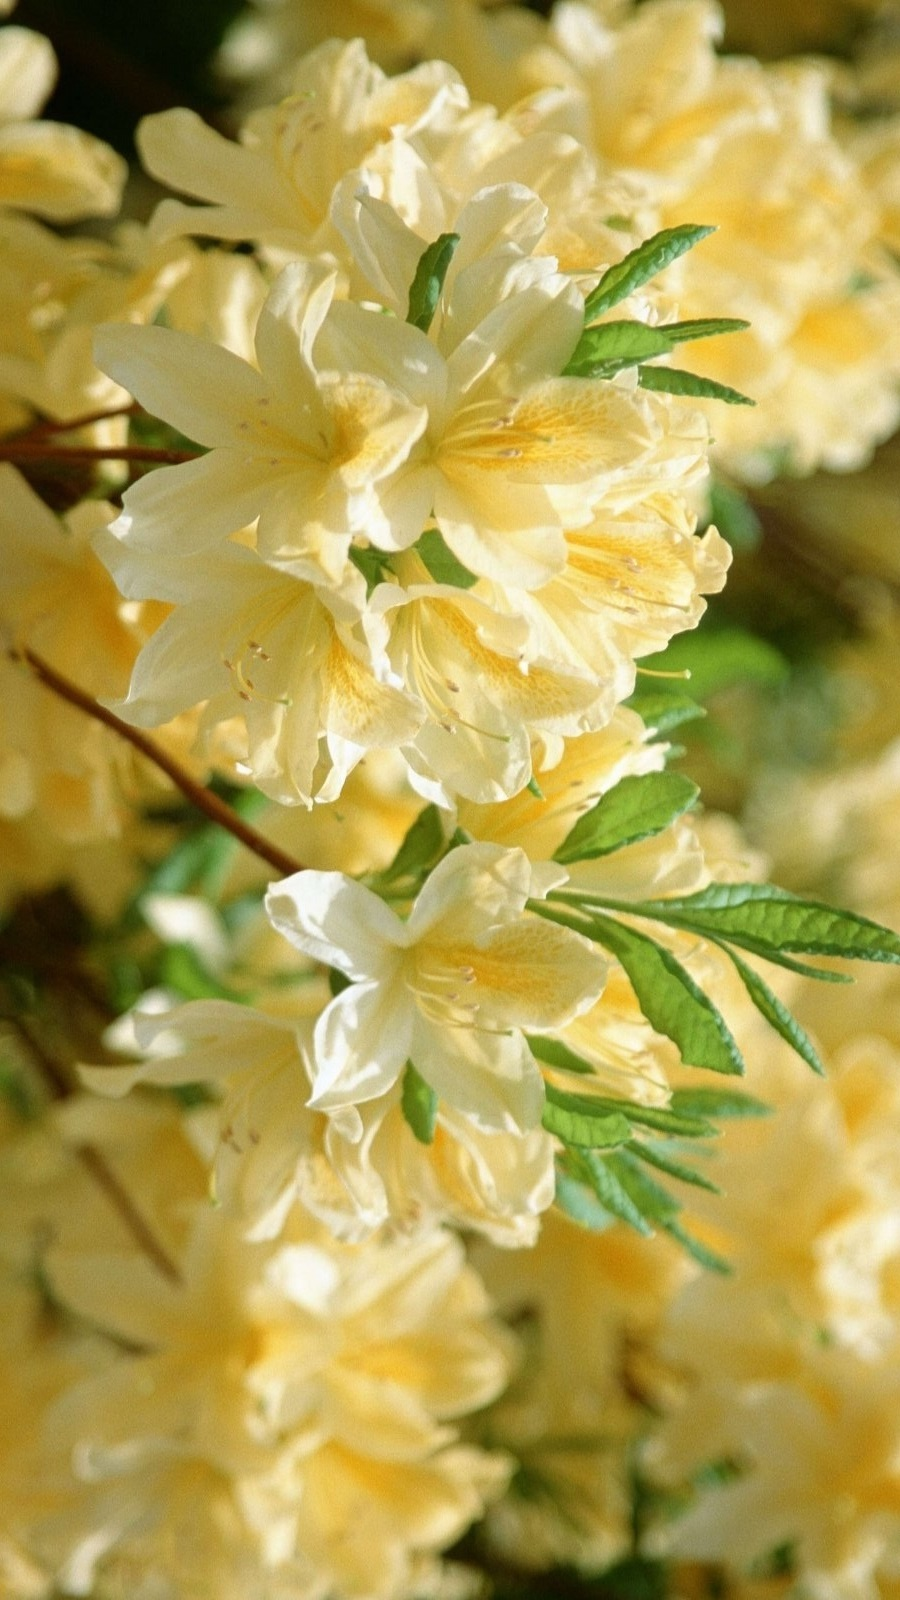 Book Ghostwriting Professional - Rhododendron